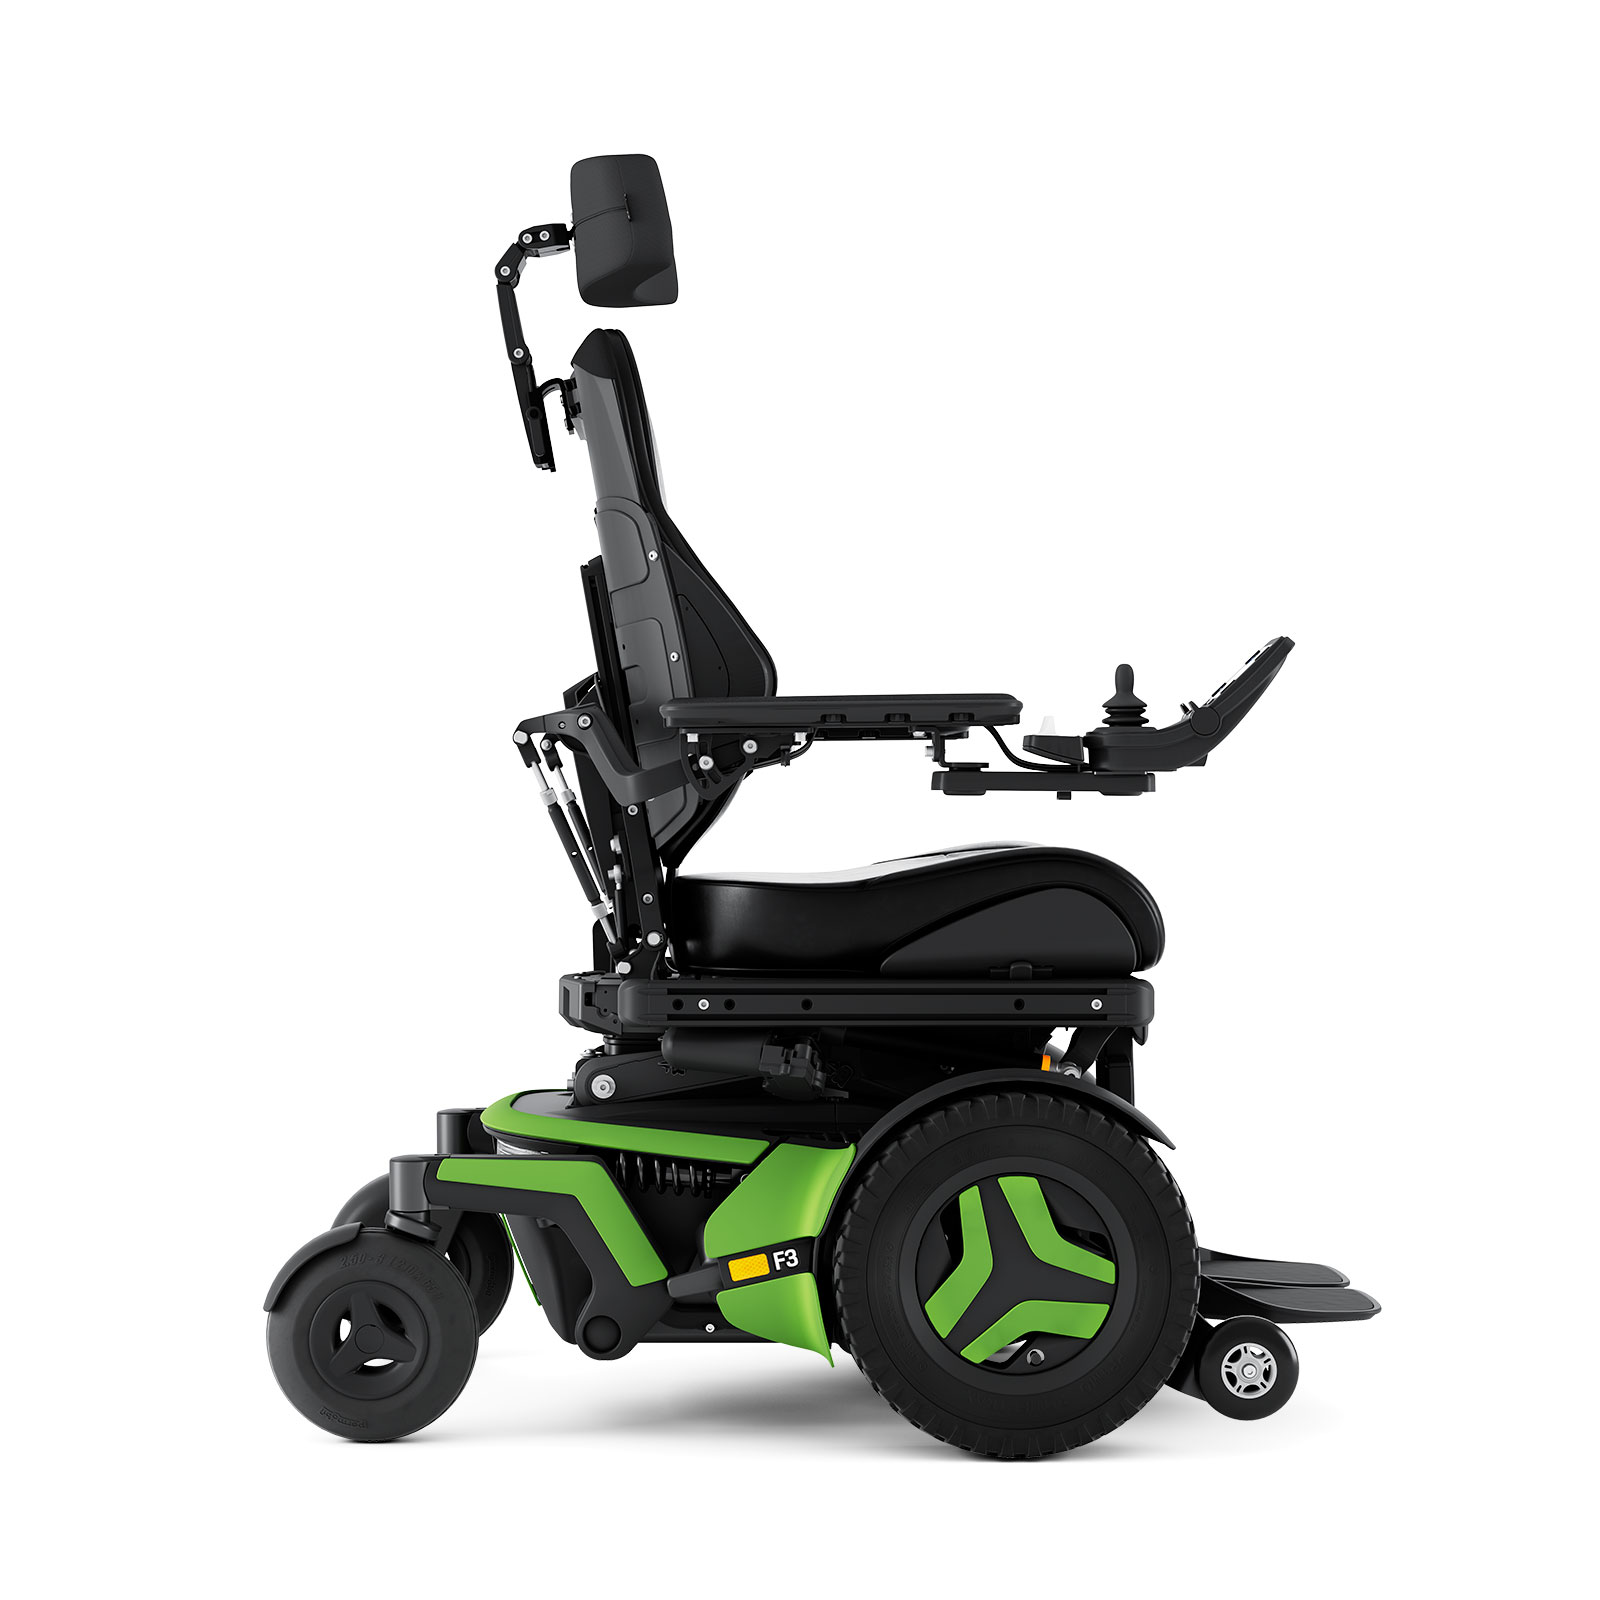 photo of a green and black F3-Corpus power chair